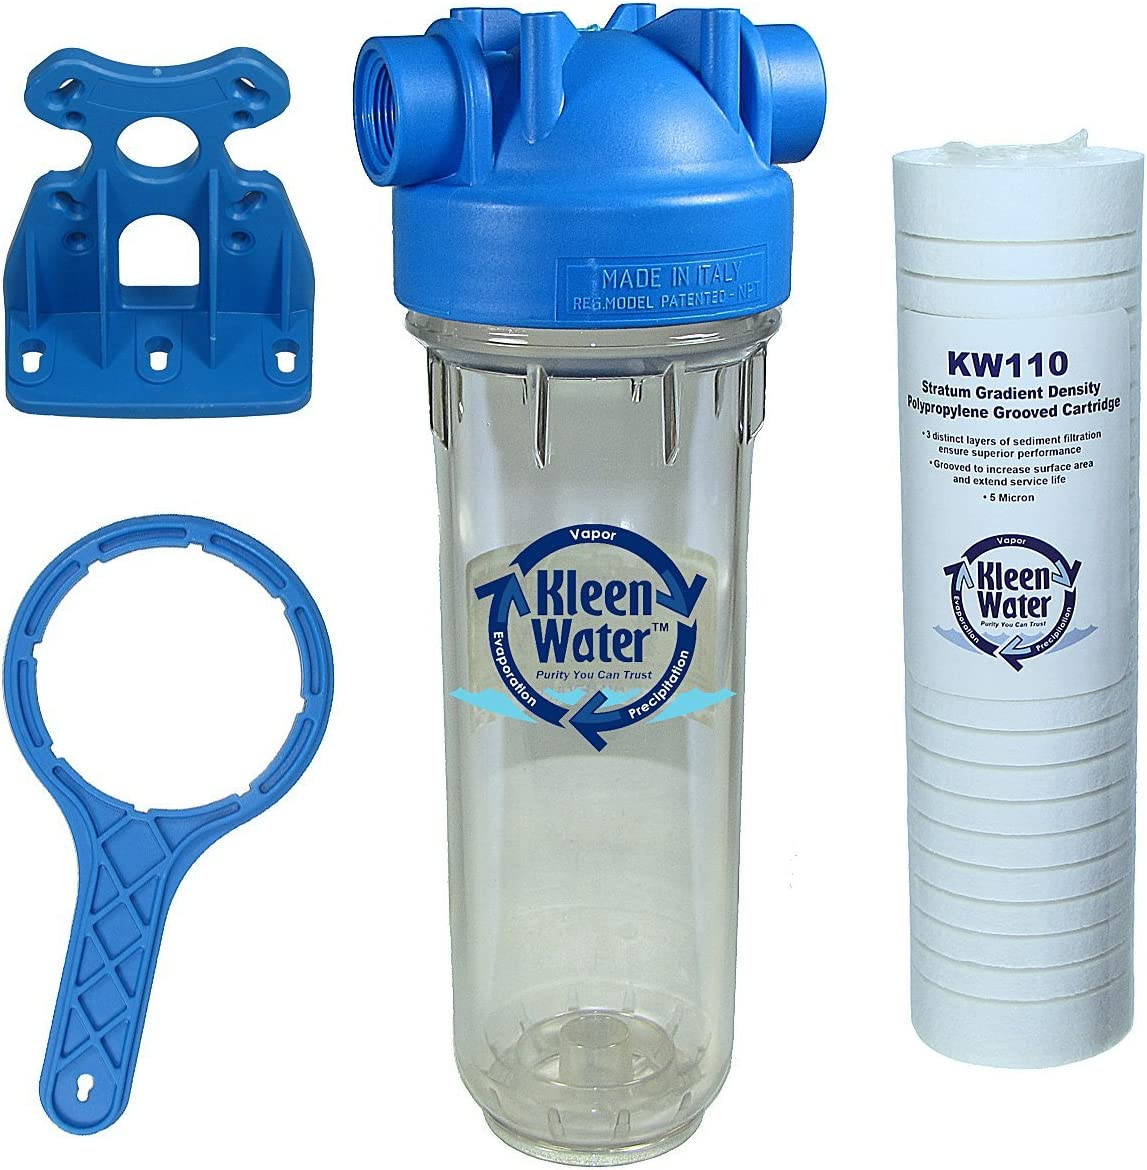 KleenWater KW2510HT Premier Water Filter System Made in Italy